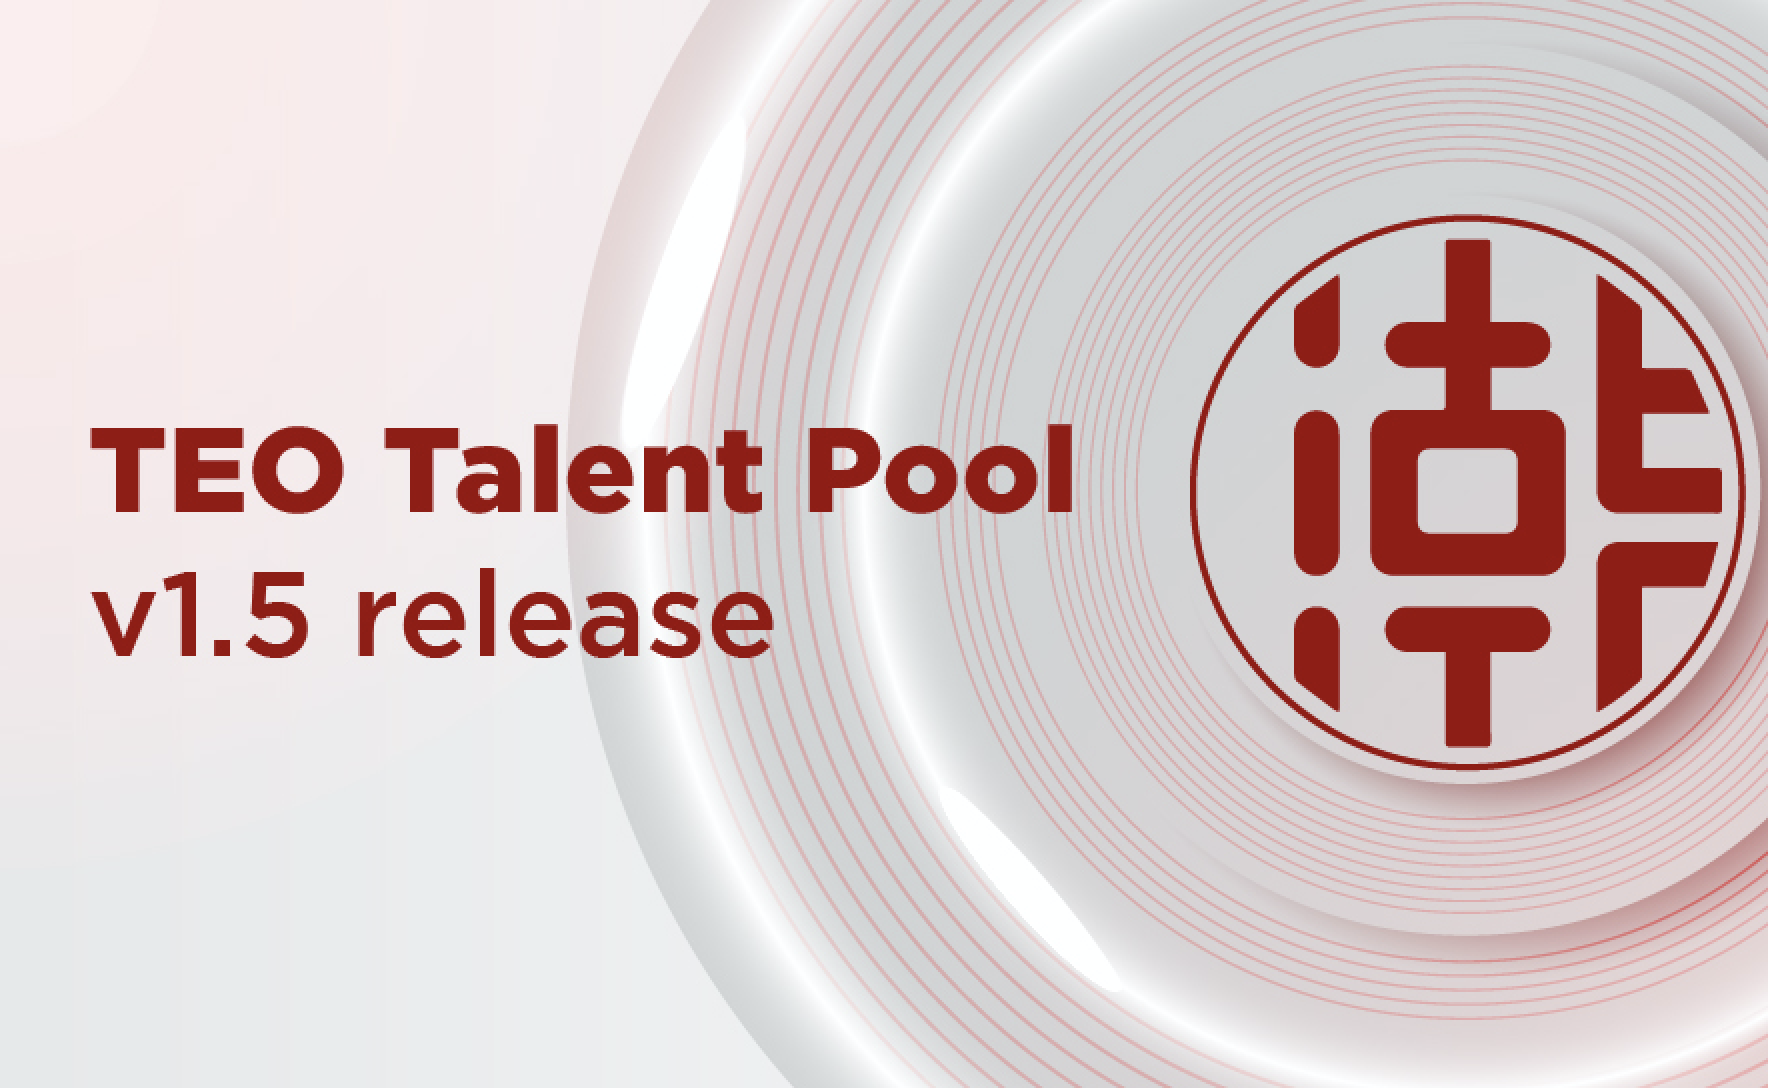 TEO Talent Pool v1.5 unveils Network feature